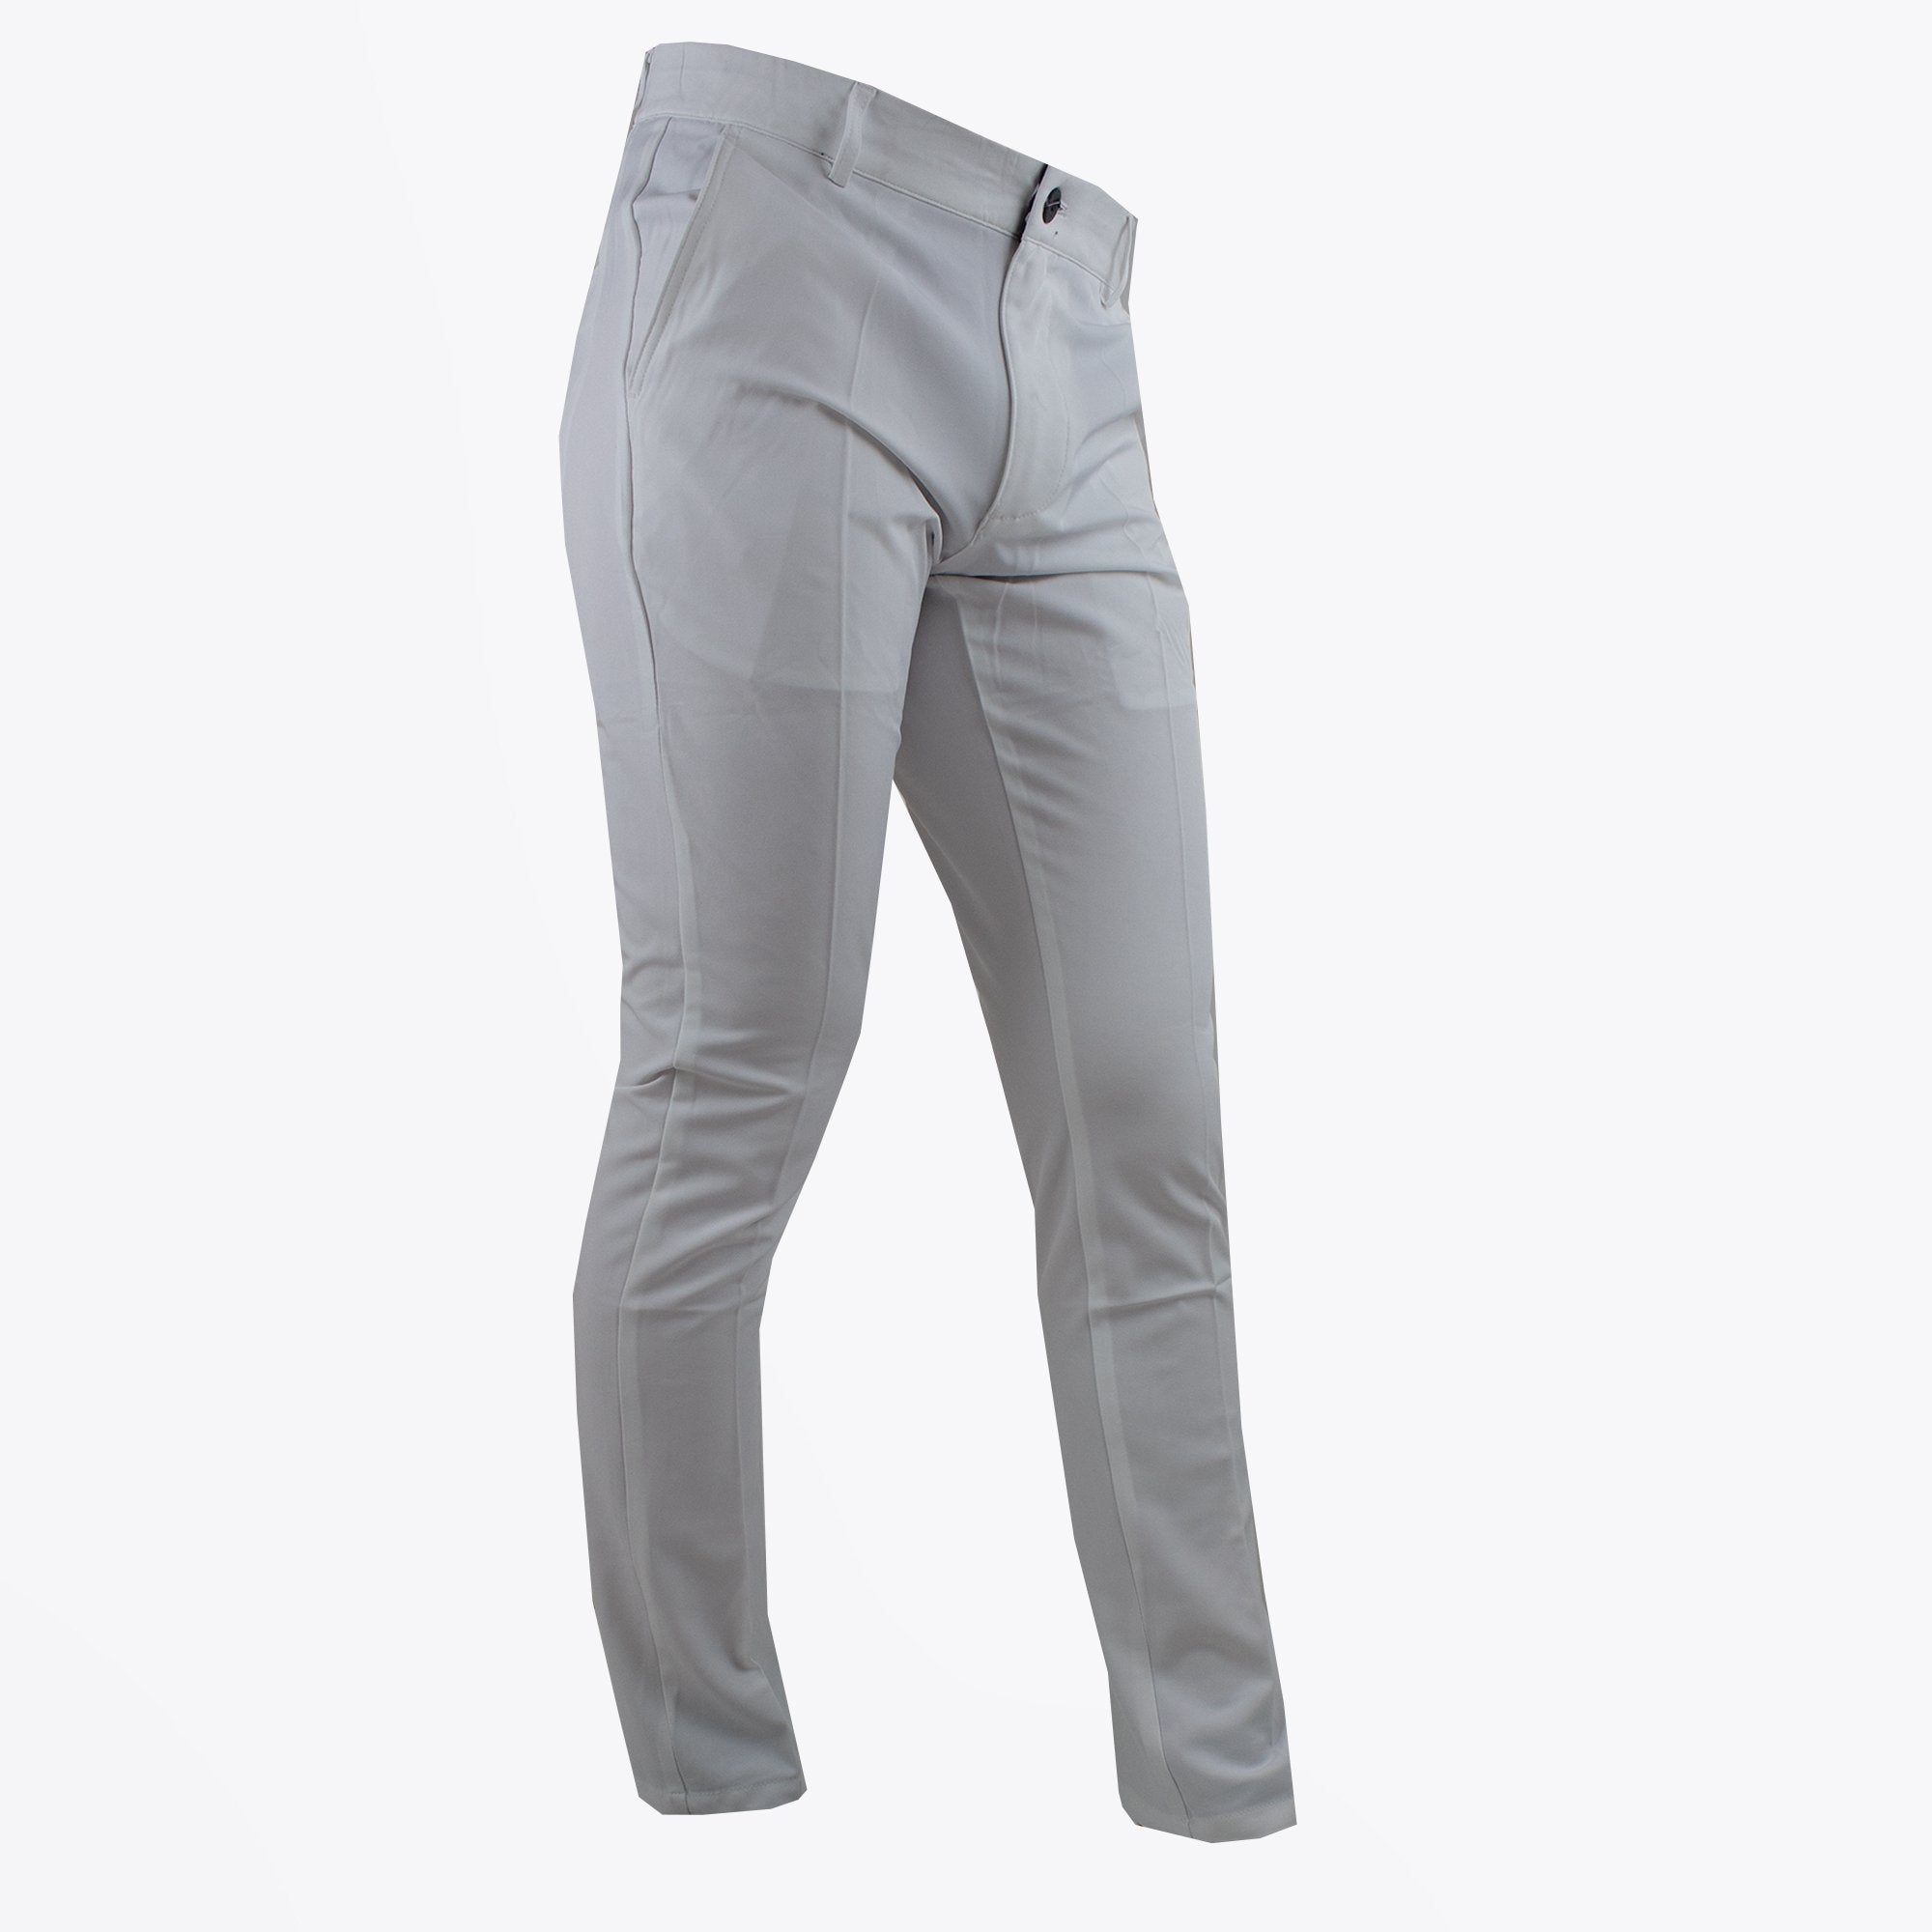 Druids Golf - Mens Clima Trousers (Grey)